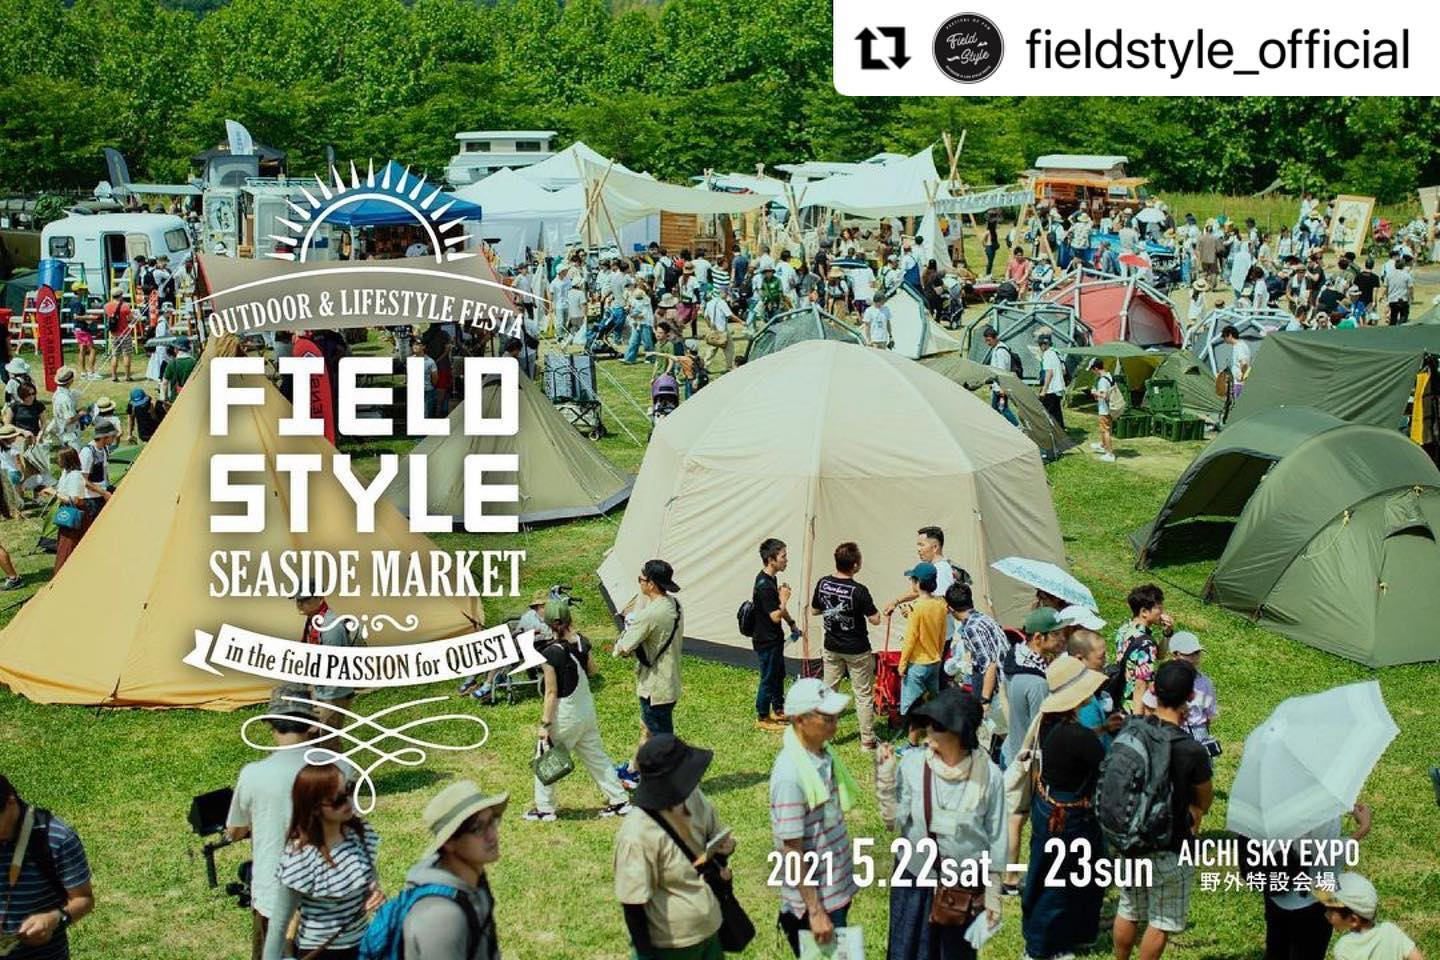 #Repost @fieldstyle_official ・・・